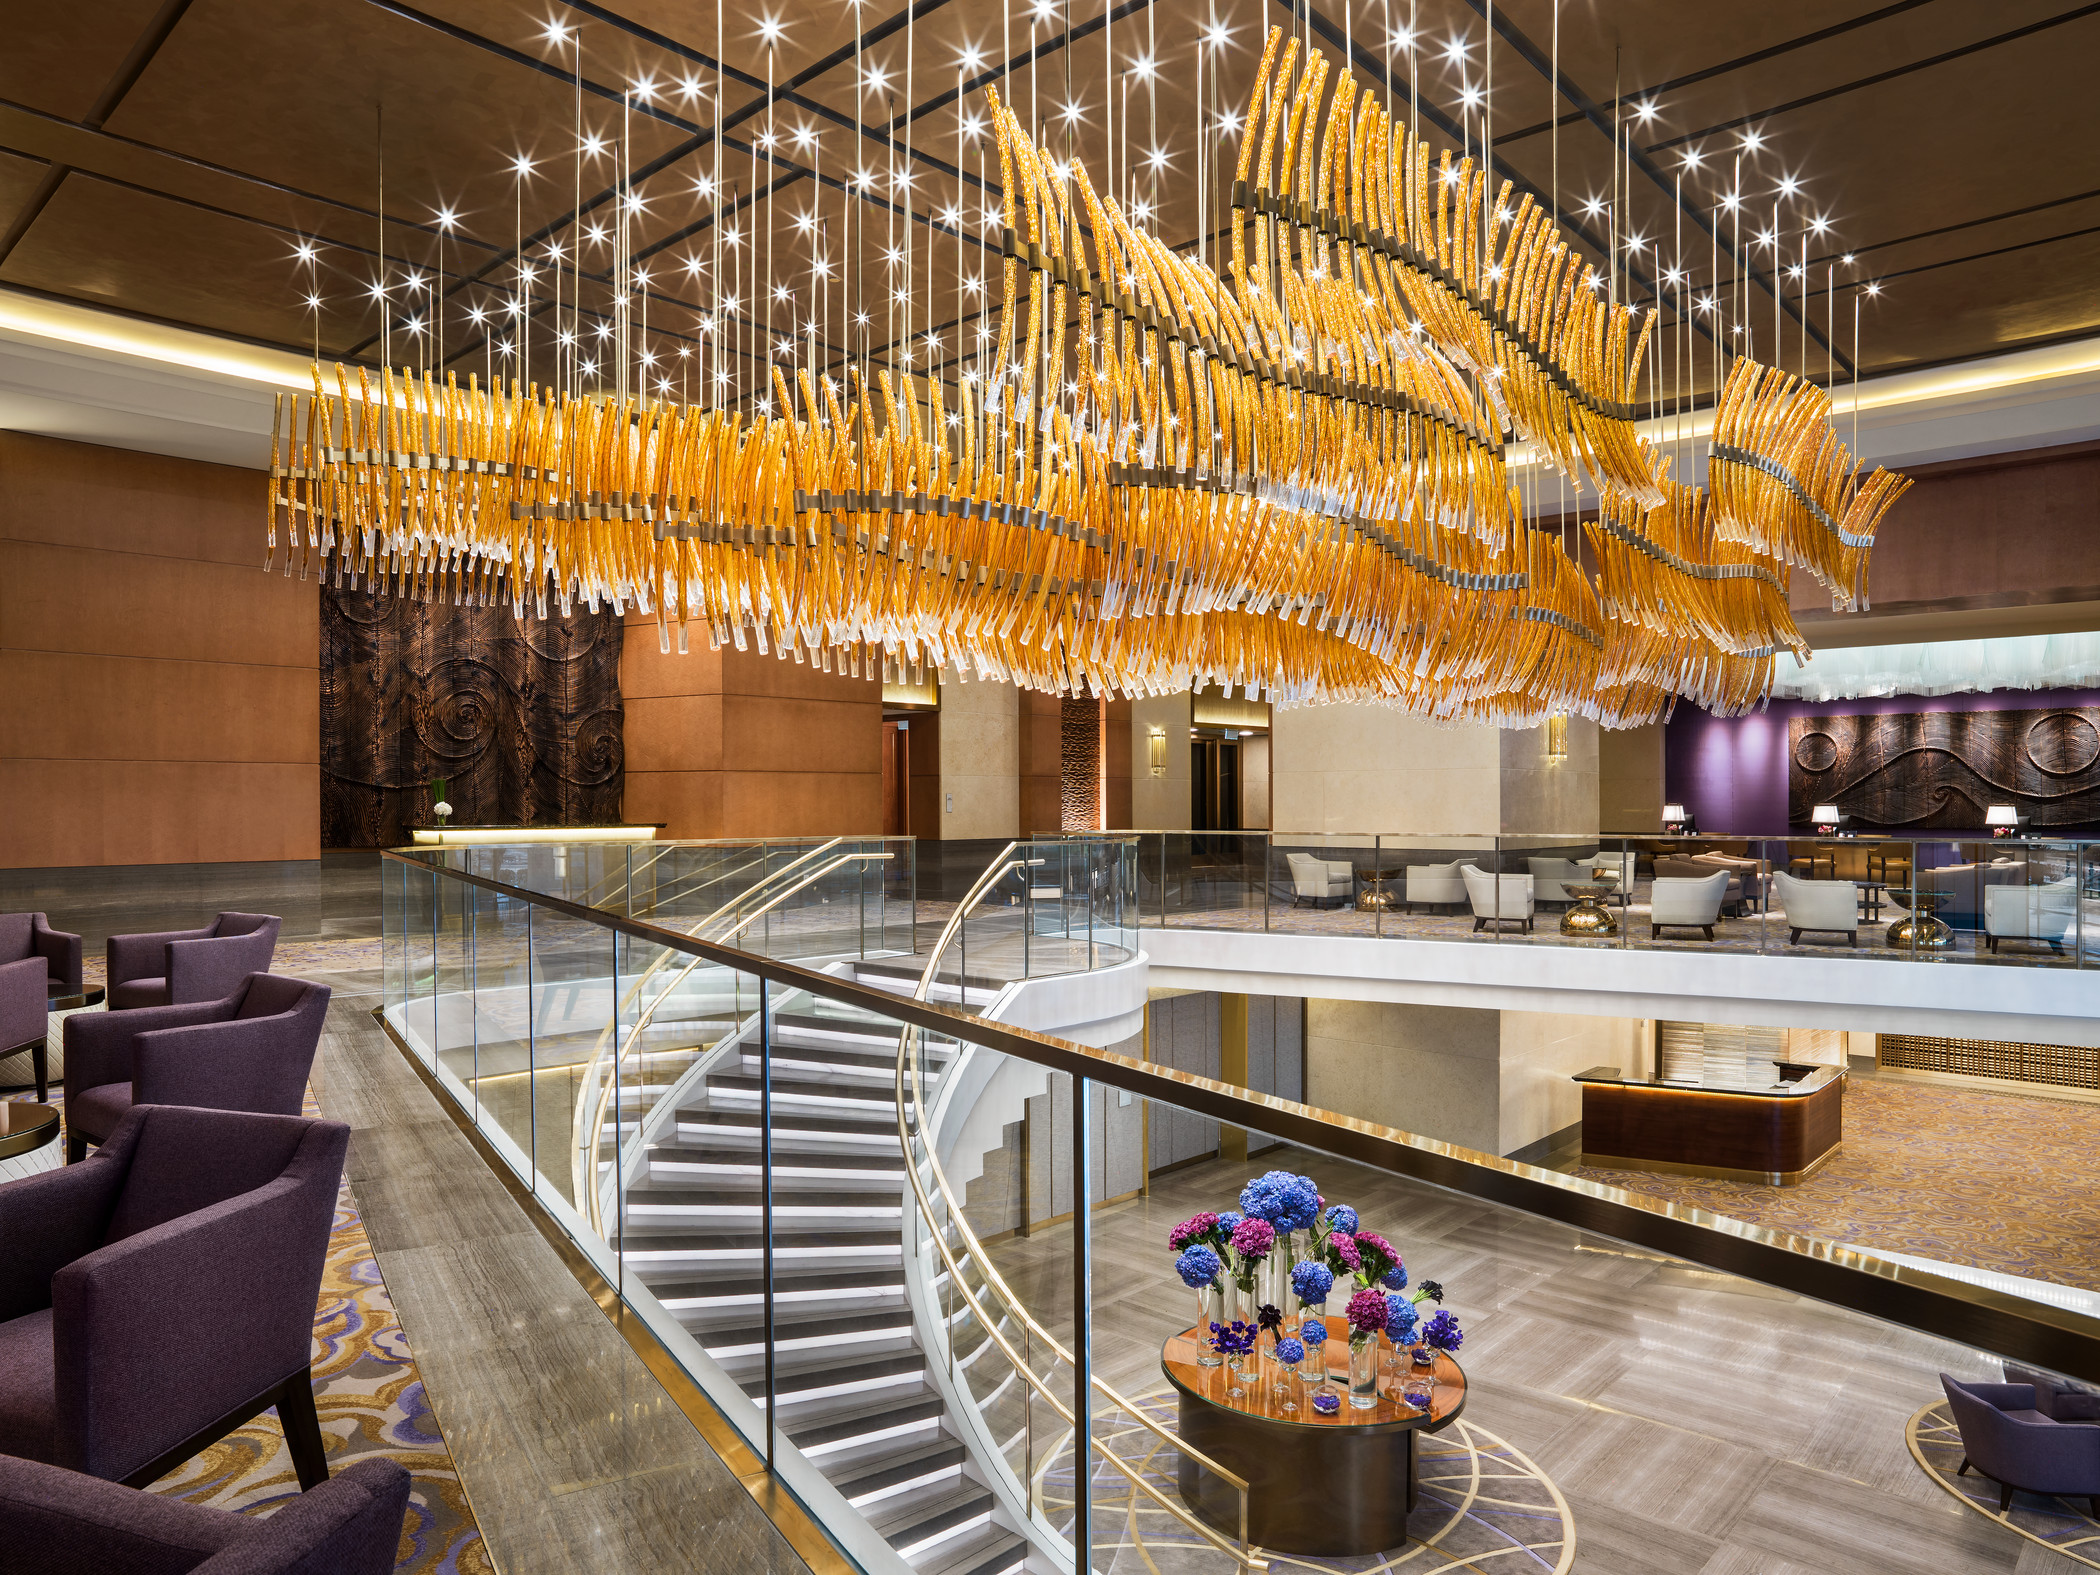 The lobby's sweeping staircase flaunts a dramatic air with illuminated amber, bronze and gold blown-glass strands hanging above as a shimmering allusion to ship sails billowing in the wind.